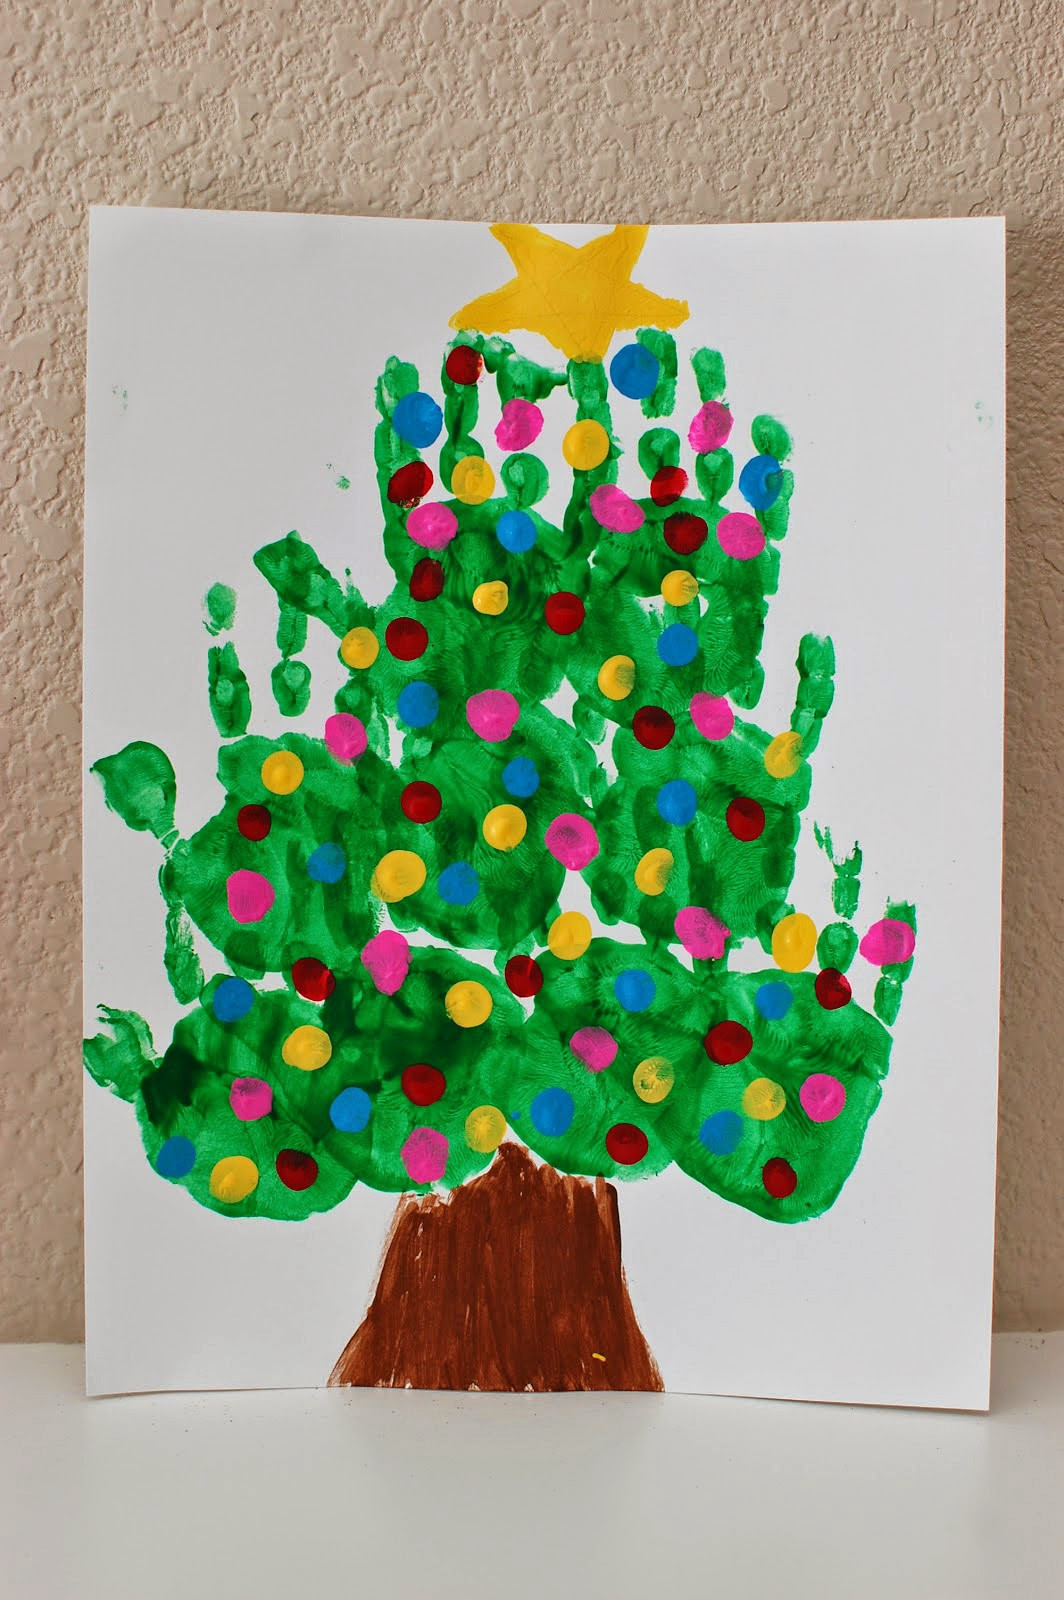 Best ideas about Christmas Arts And Crafts For Preschoolers . Save or Pin 20 of the Cutest Christmas Handprint Crafts for Kids Now.